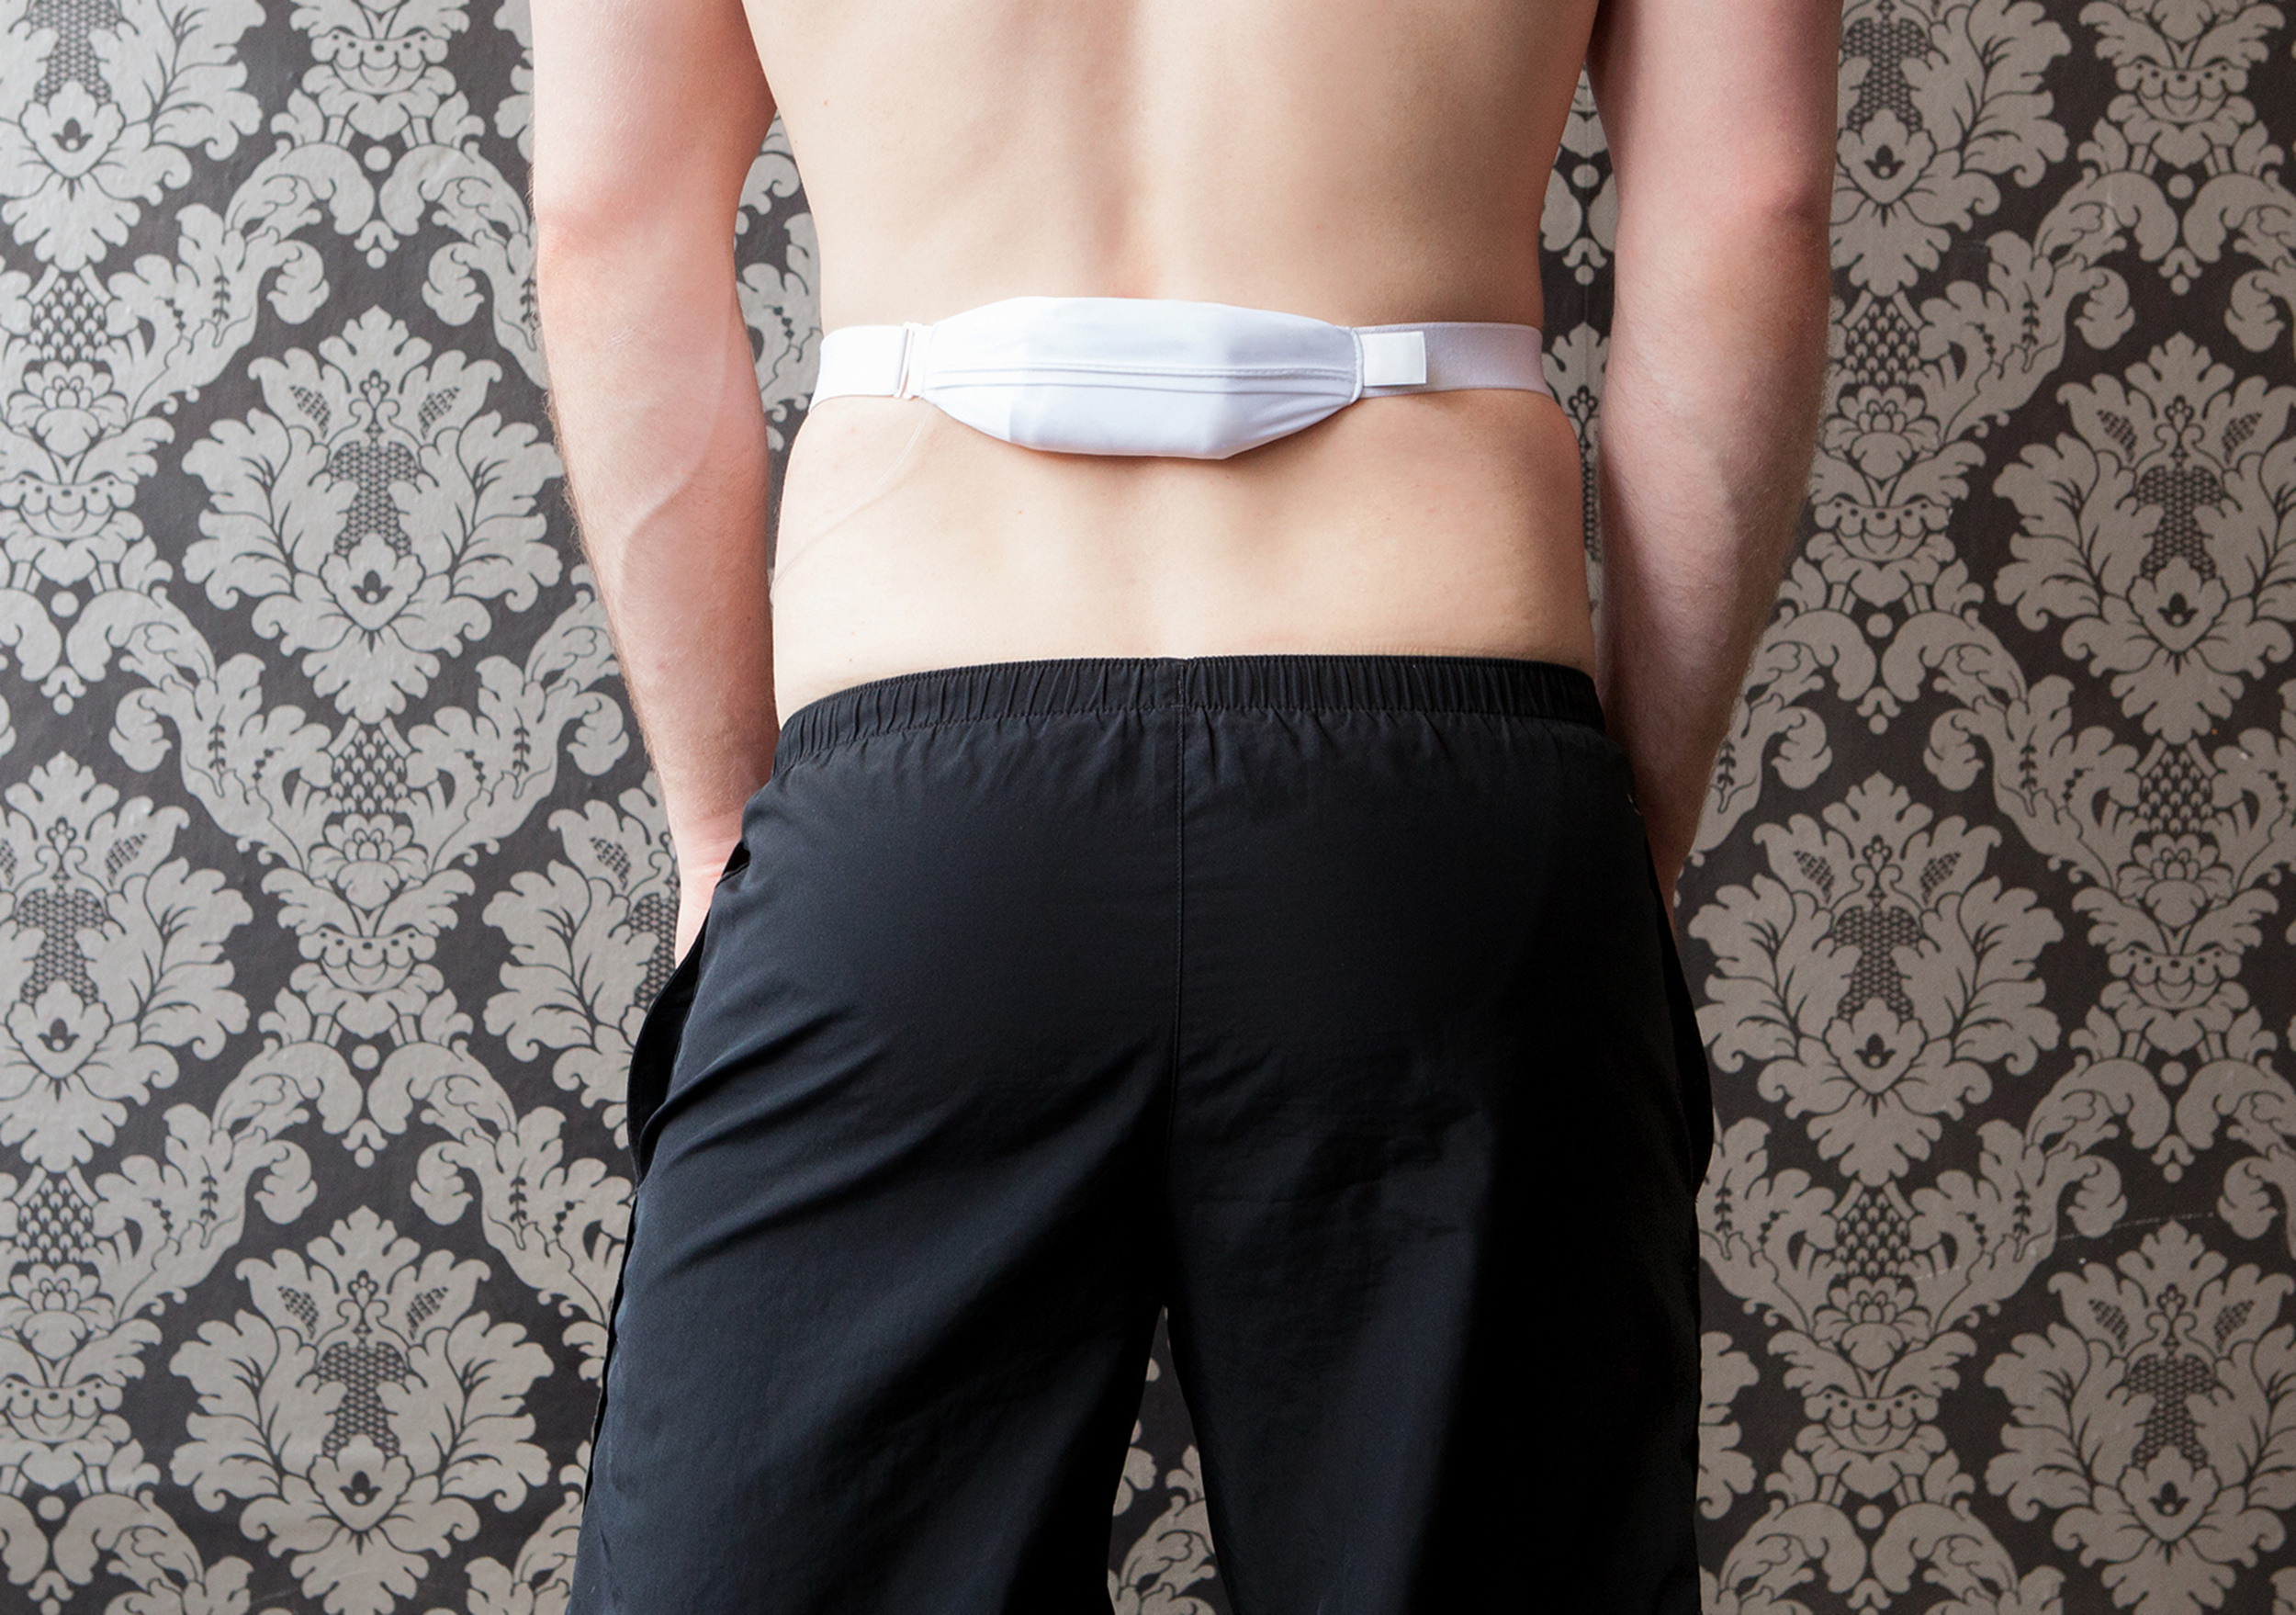 Hid-In Boys Multiway Body band